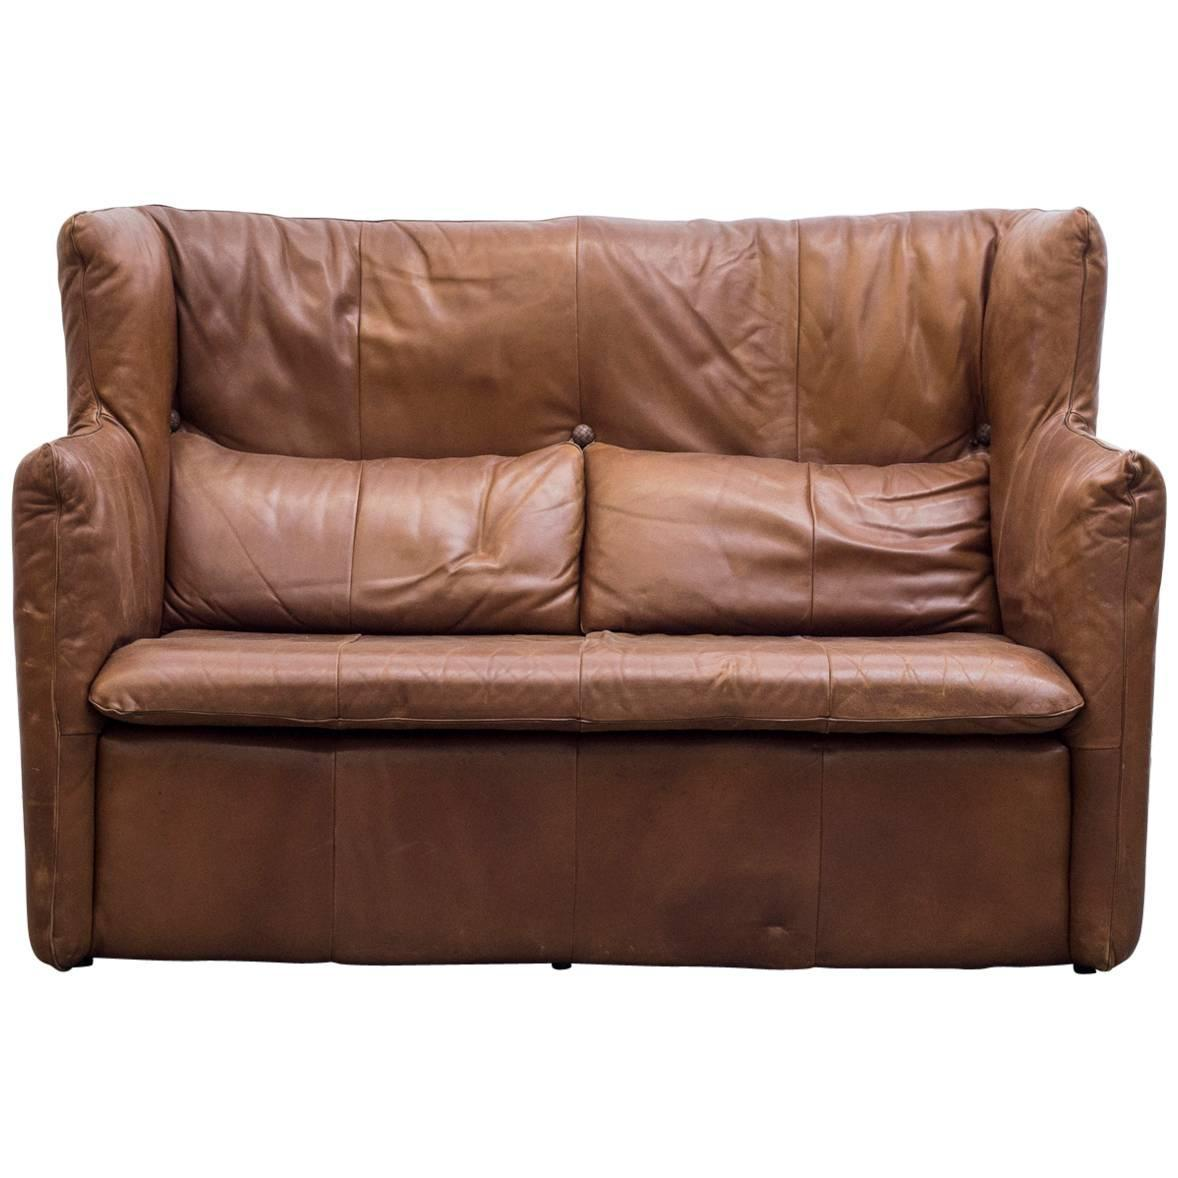 old furniture brown leather world tan bassett hamilton asp loveseat